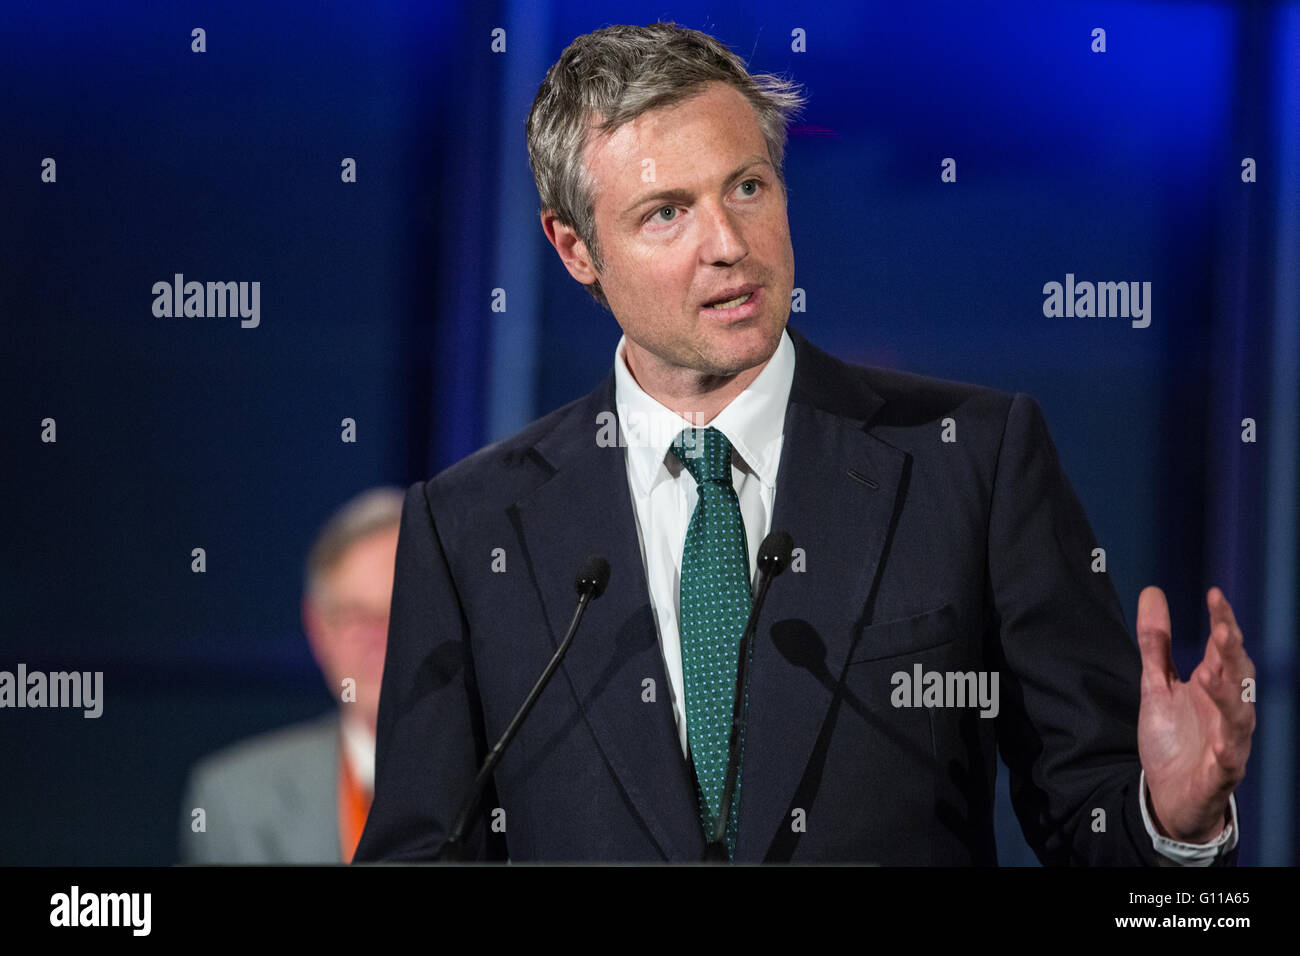 London, UK. 7th May, 2016. Zac Goldsmith, the Conservative Party candidate to be London Mayor, speaks in City Hall - Stock Image